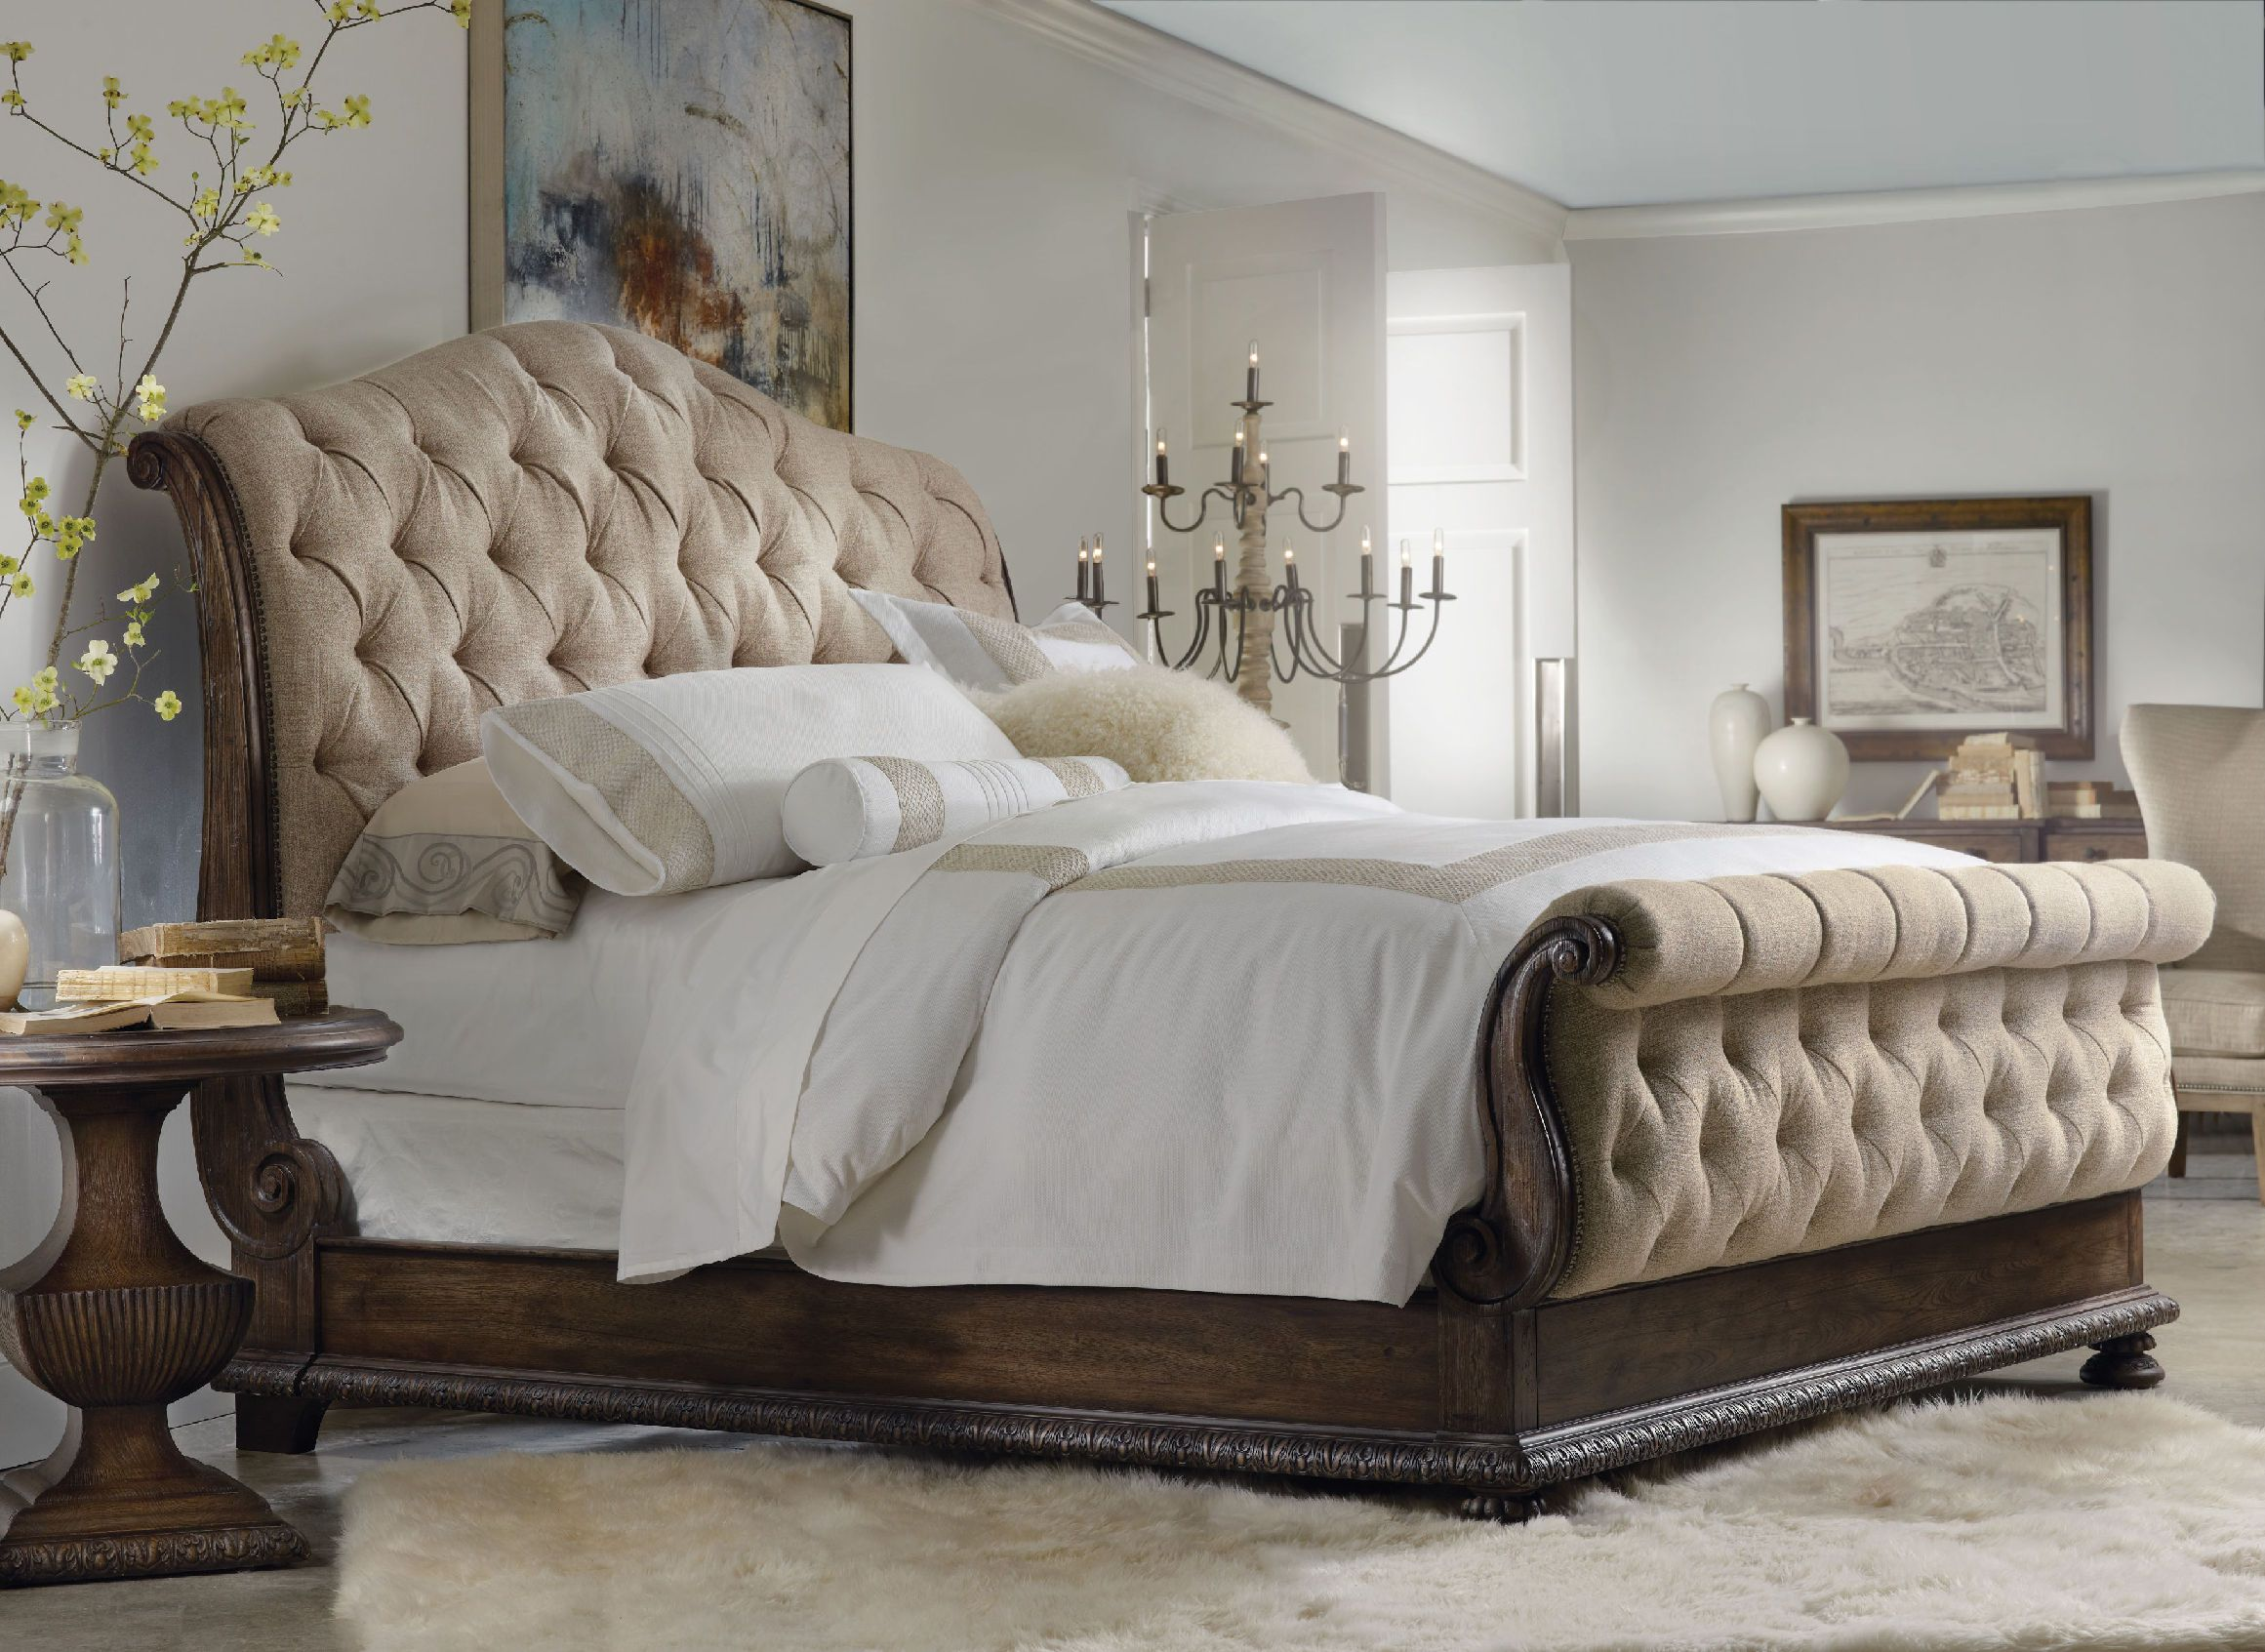 King Bedroom Furniture Hooker Furniture Bedroom Rhapsody King Tufted Bed 5070 90566